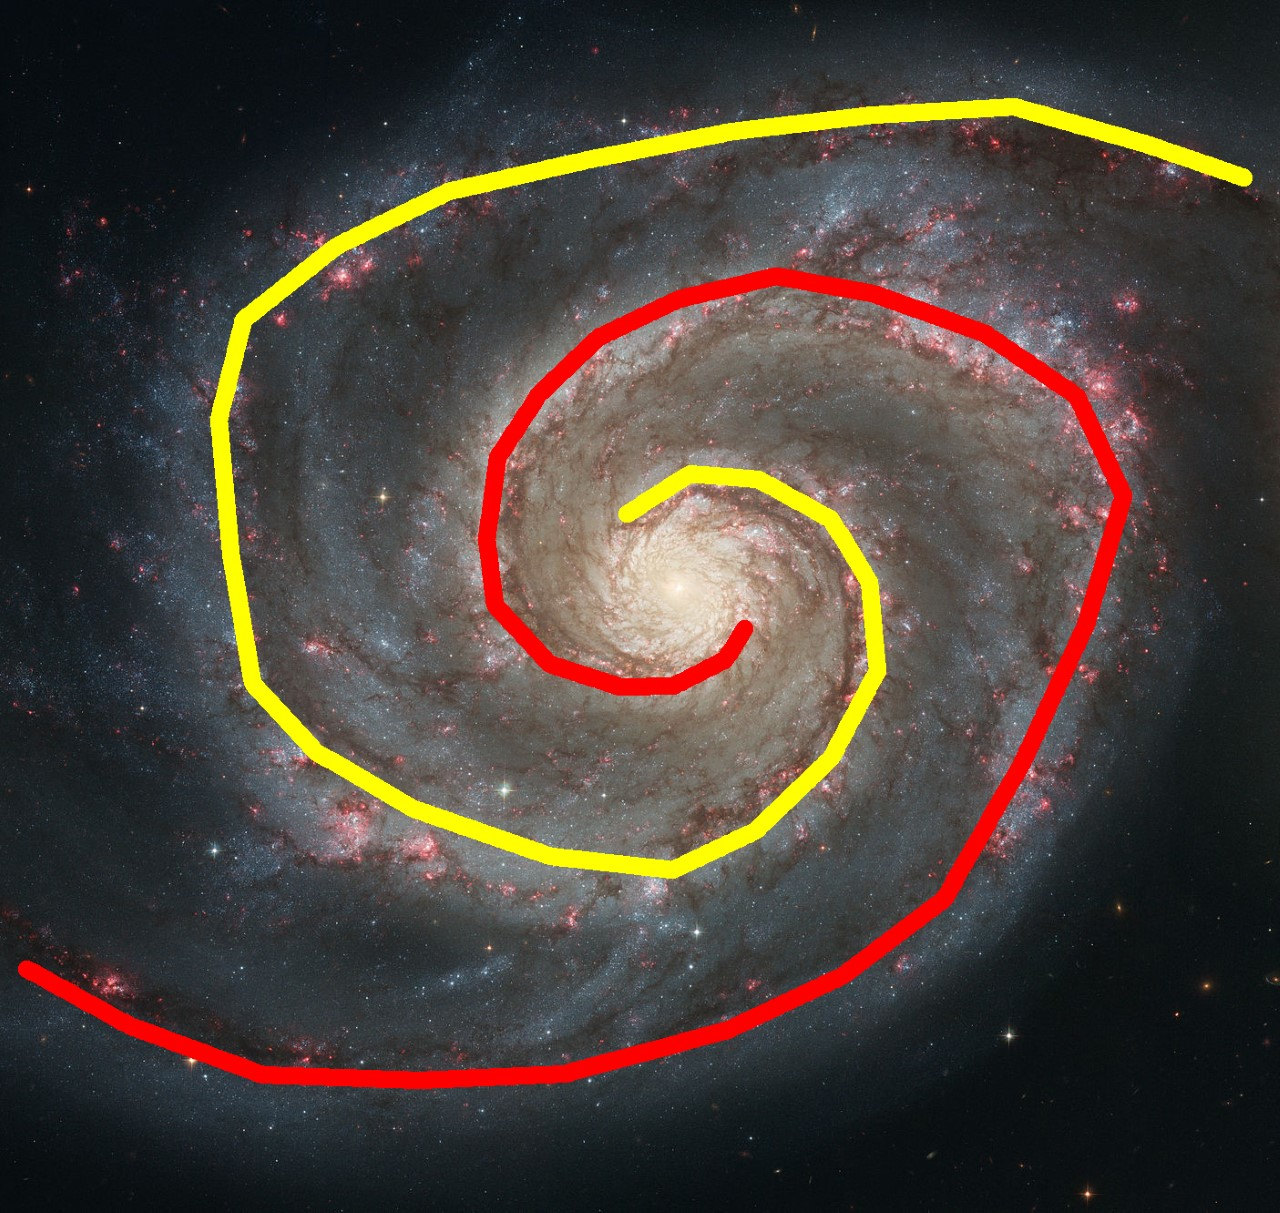 image of a spiral galaxy with tracing lines